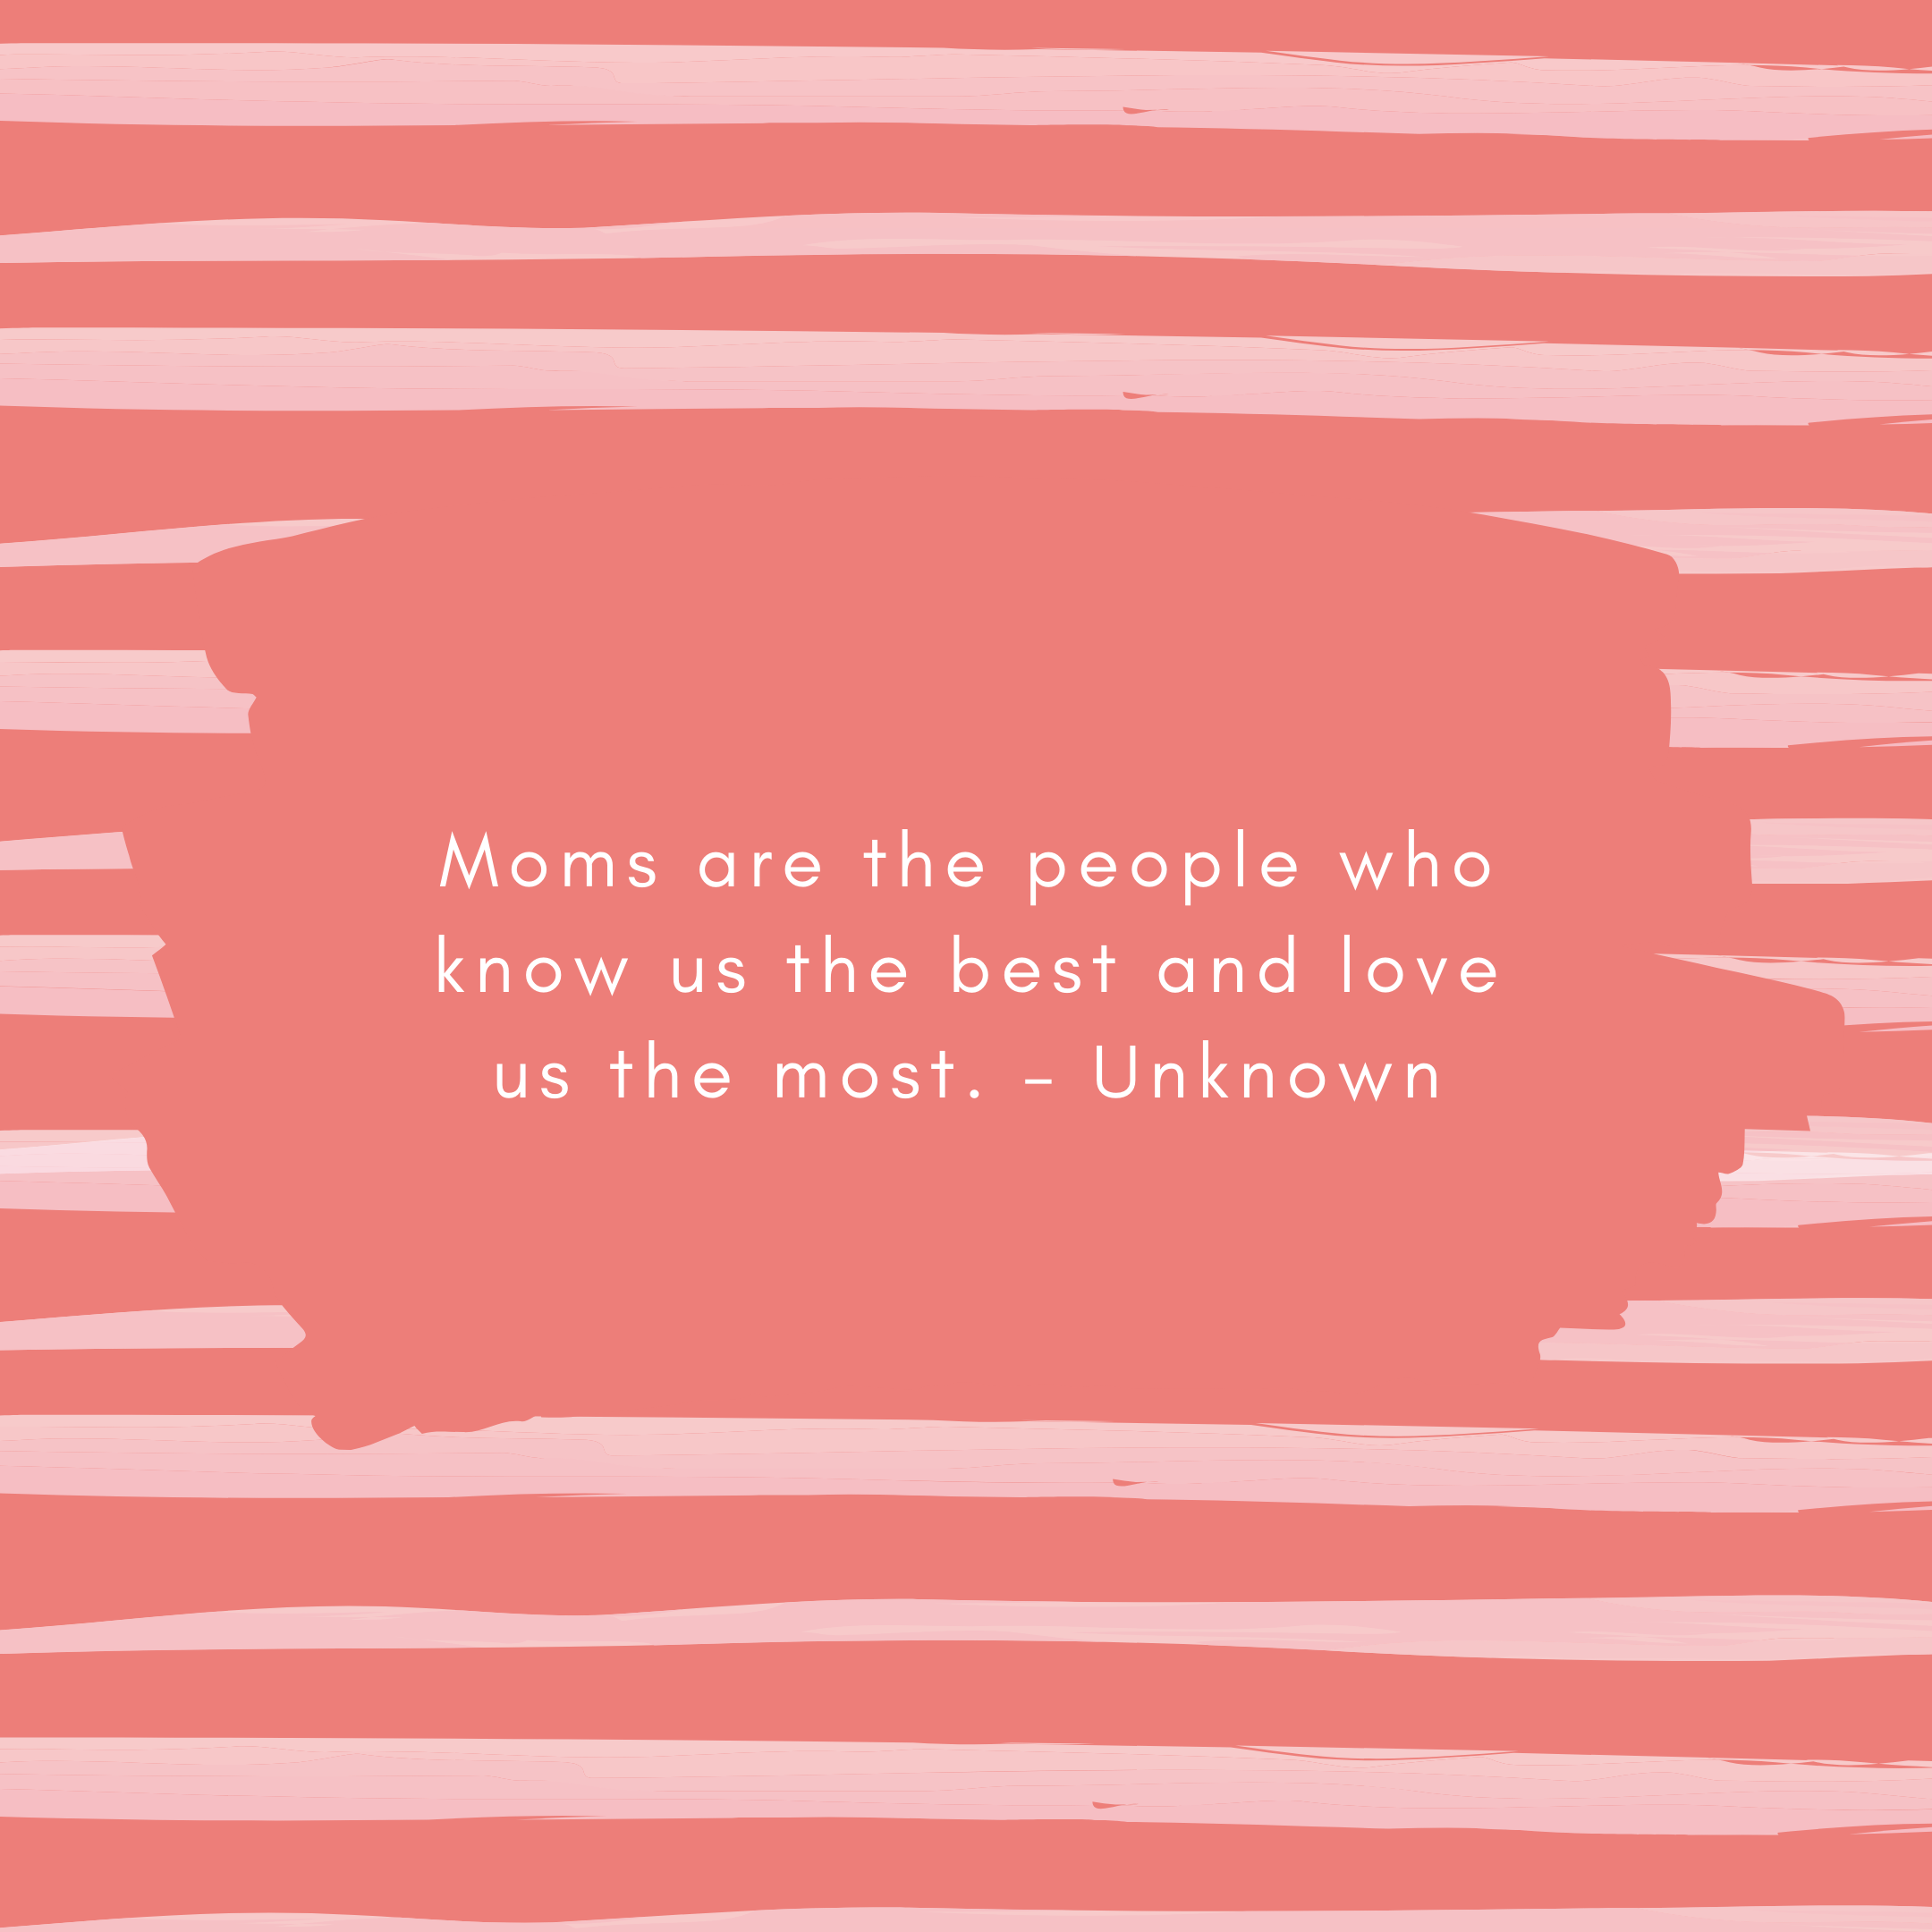 Moms are the people who know us the best and love us the most – Unknown